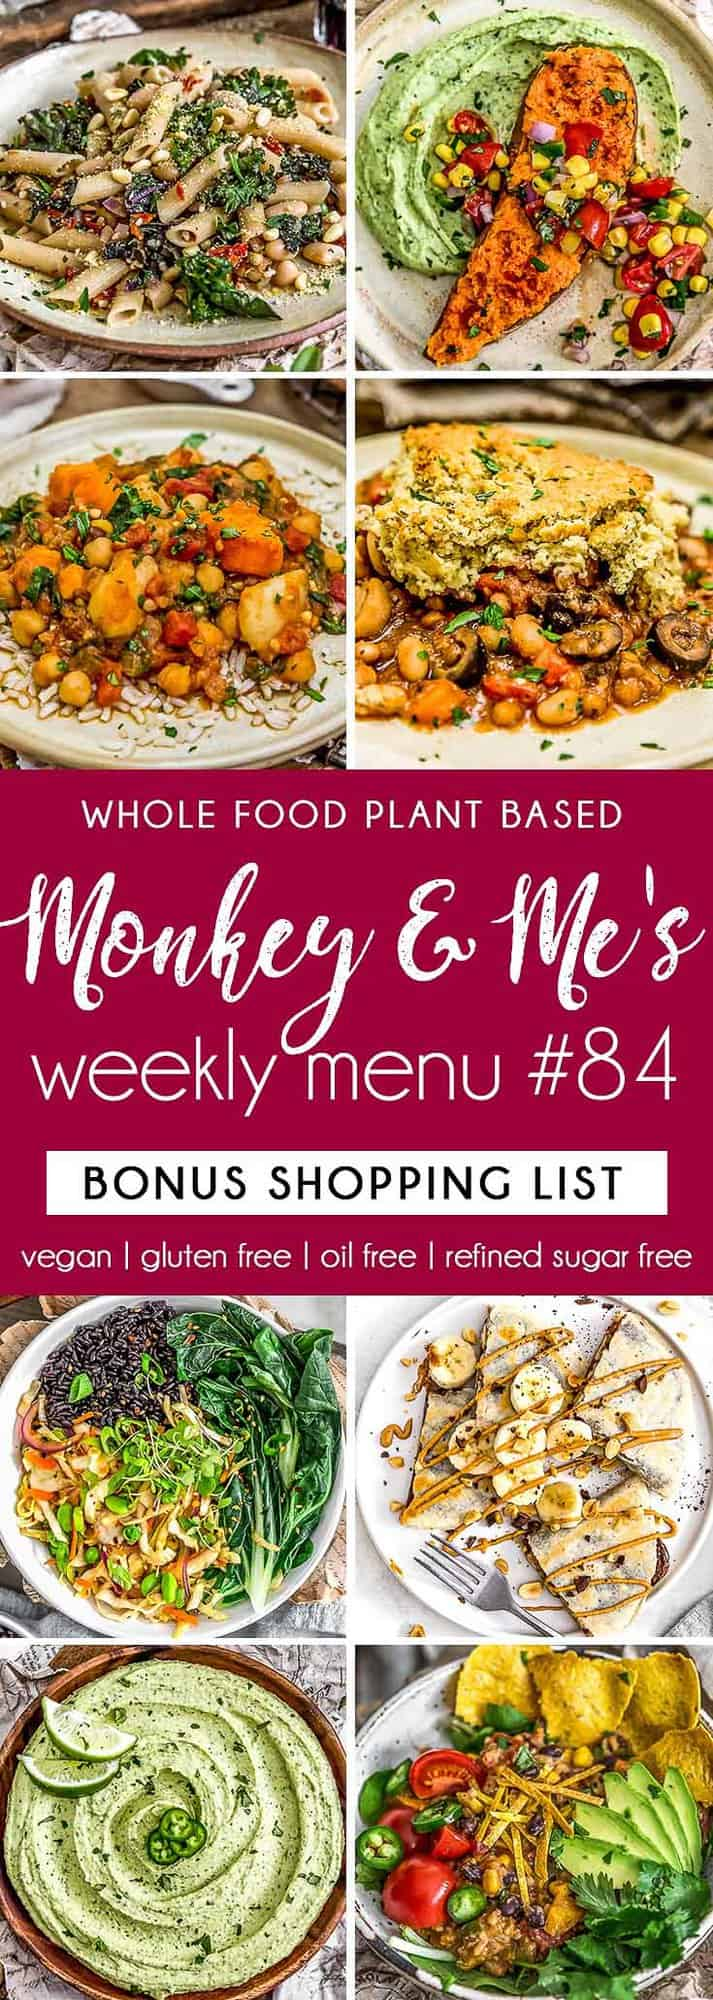 Monkey and Me's Menu 84 featuring 8 recipes